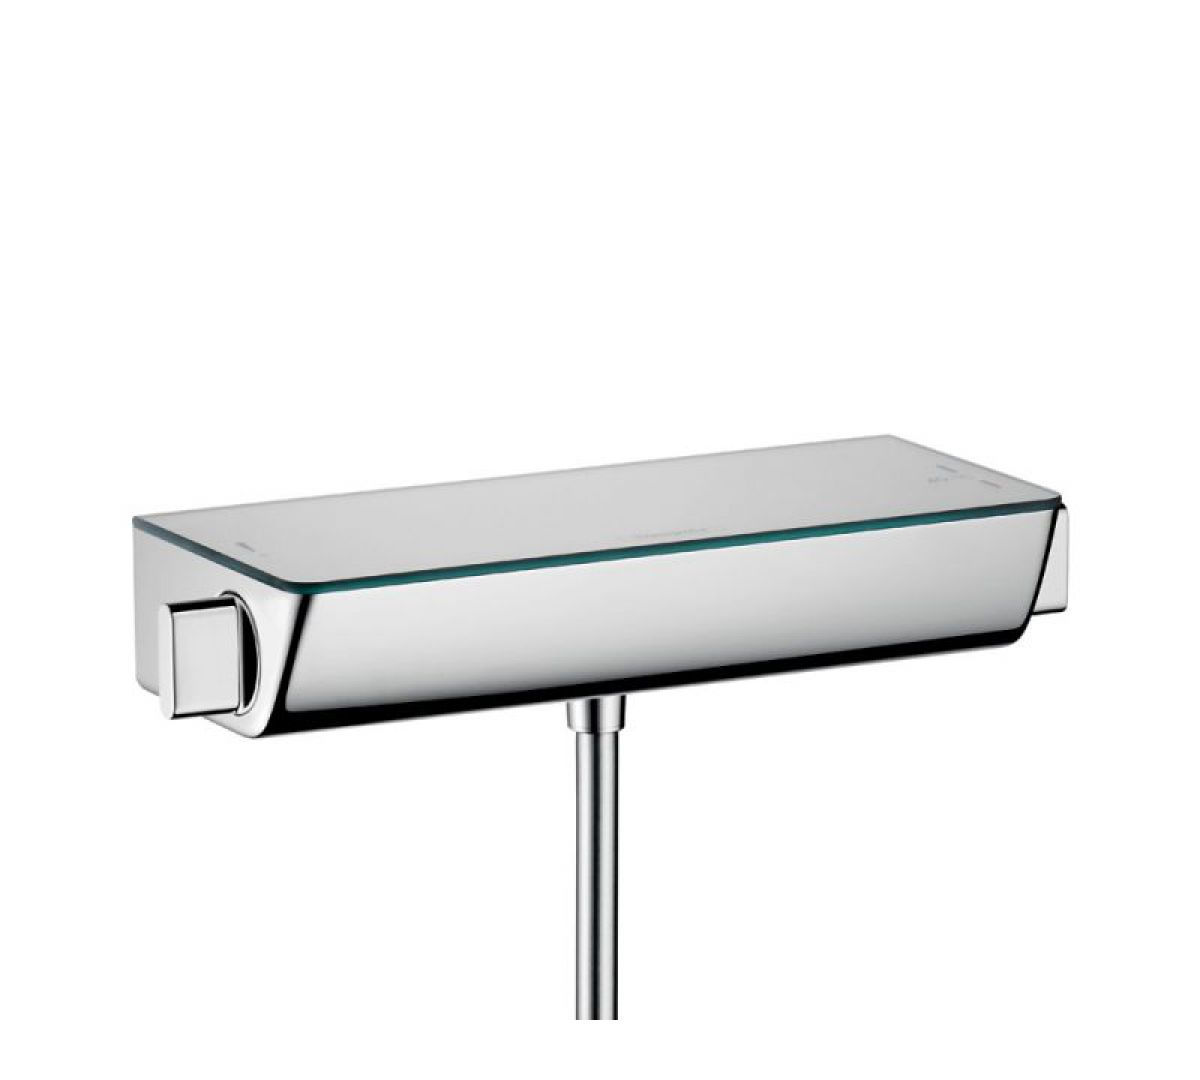 hansgrohe ecostat select thermostatic shower mixer bathrooms direct yorkshire. Black Bedroom Furniture Sets. Home Design Ideas